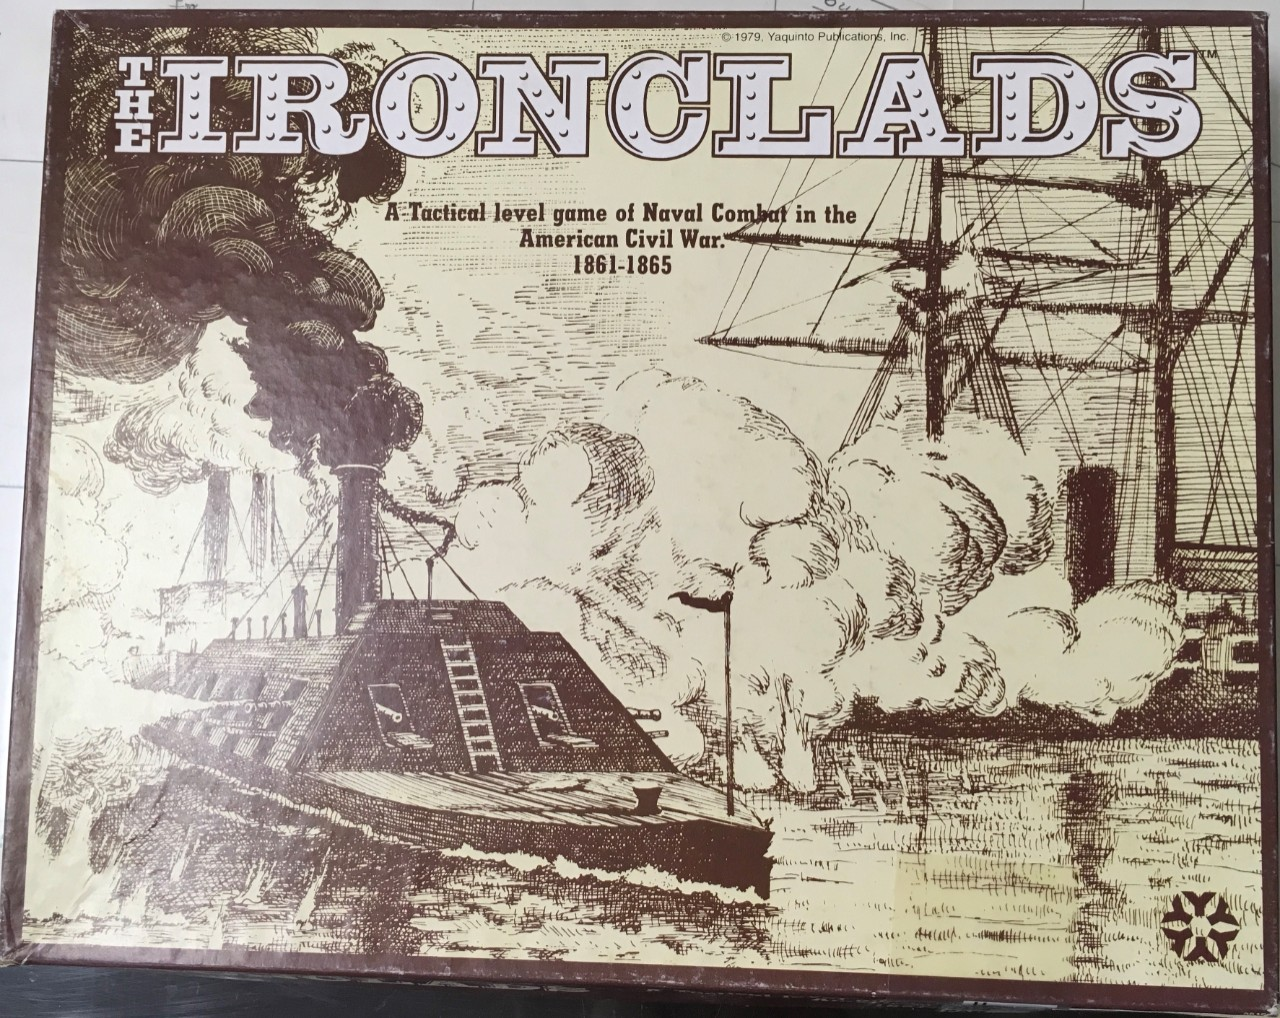 JPEG photo of the cover of the game Ironclads:A Tactical Level Game of Naval Combat in the American Civil War. 1861 – 1865